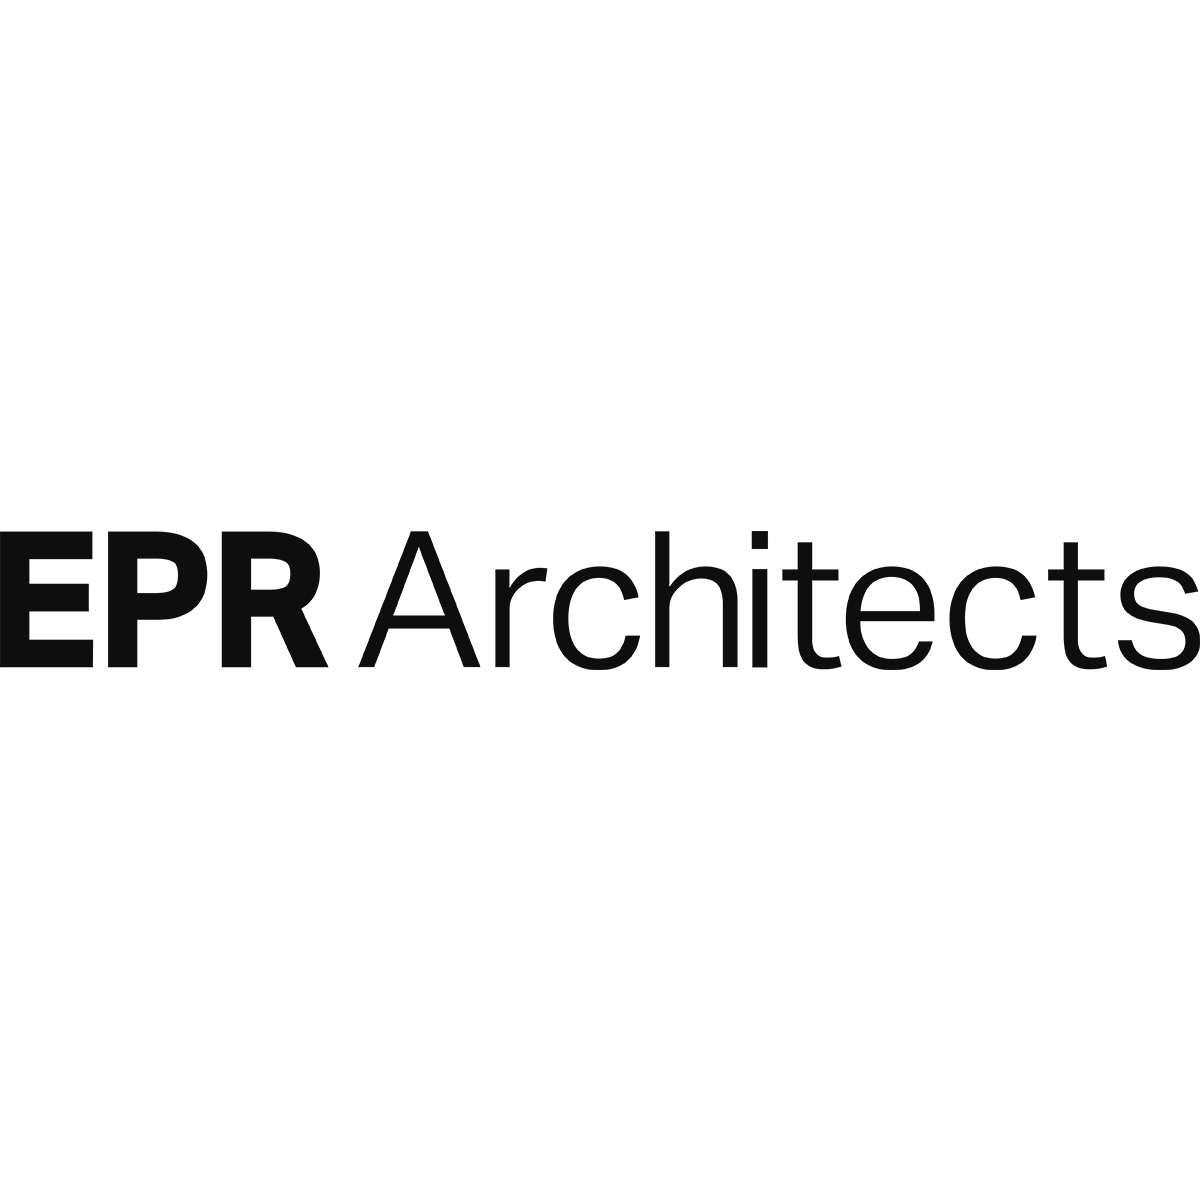 EPR Architects